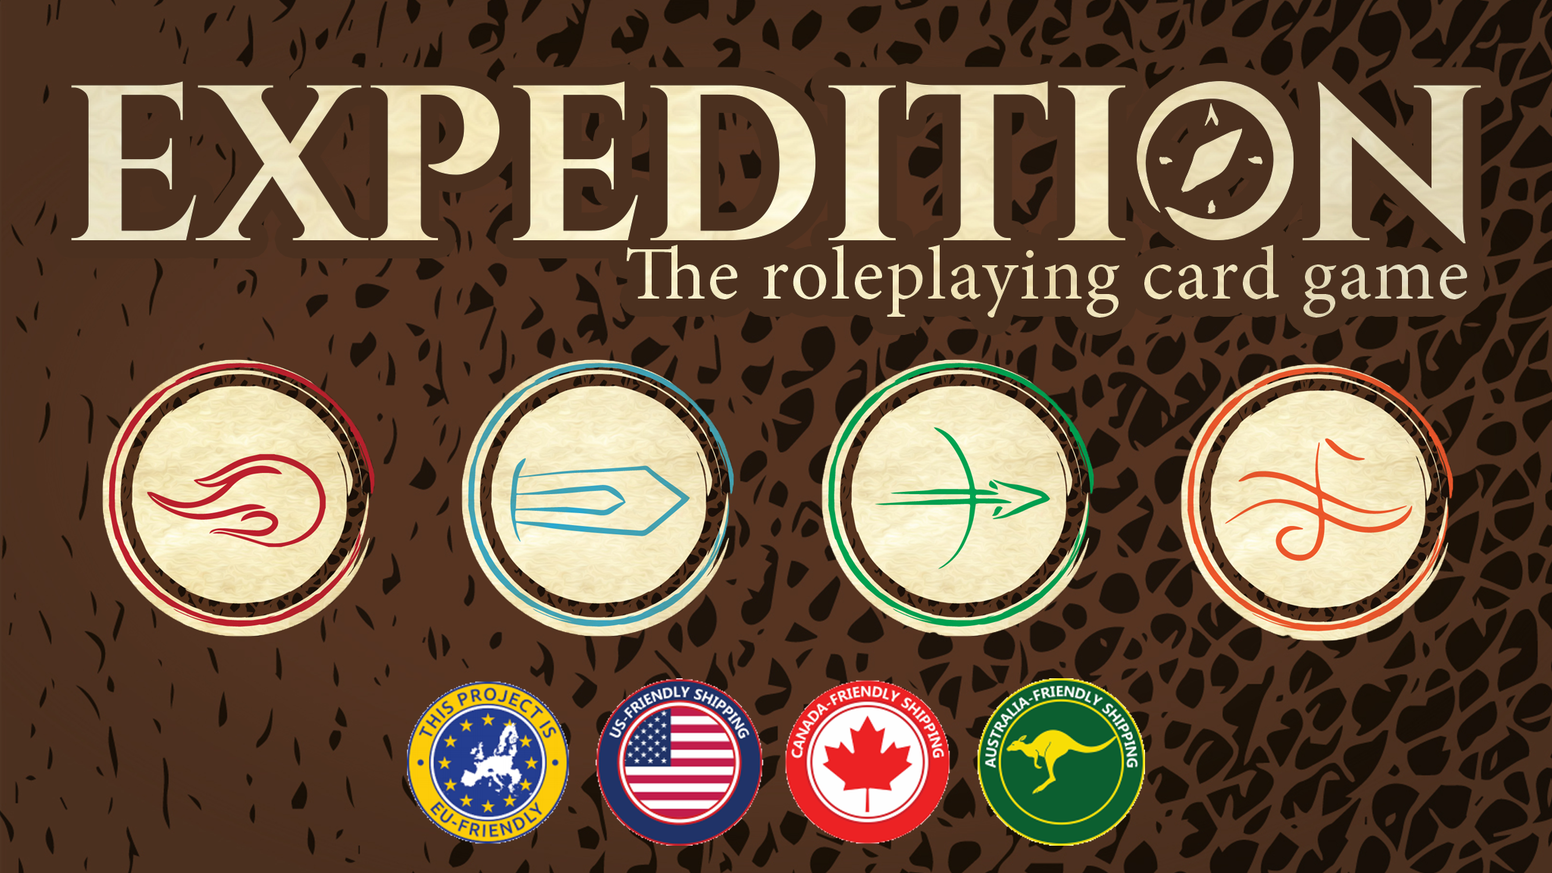 Expedition The Roleplaying Card Game By Todd Medema Kickstarter